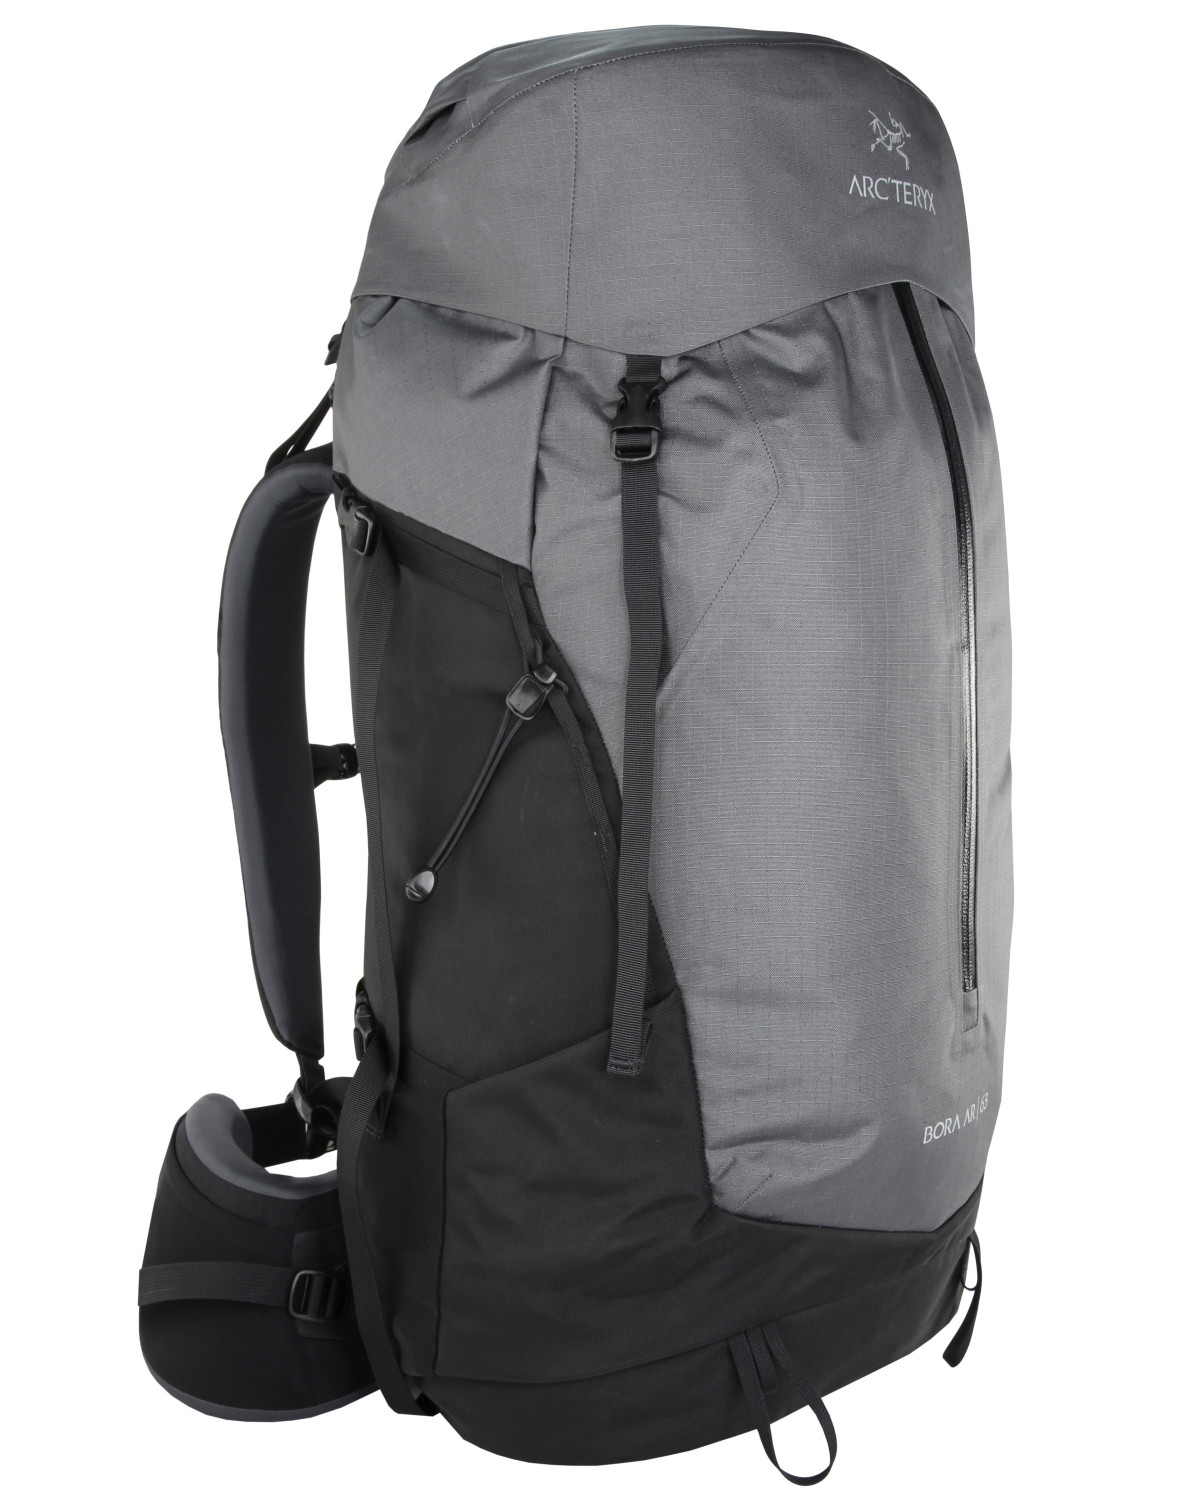 Bora AR 63 Backpack Men's